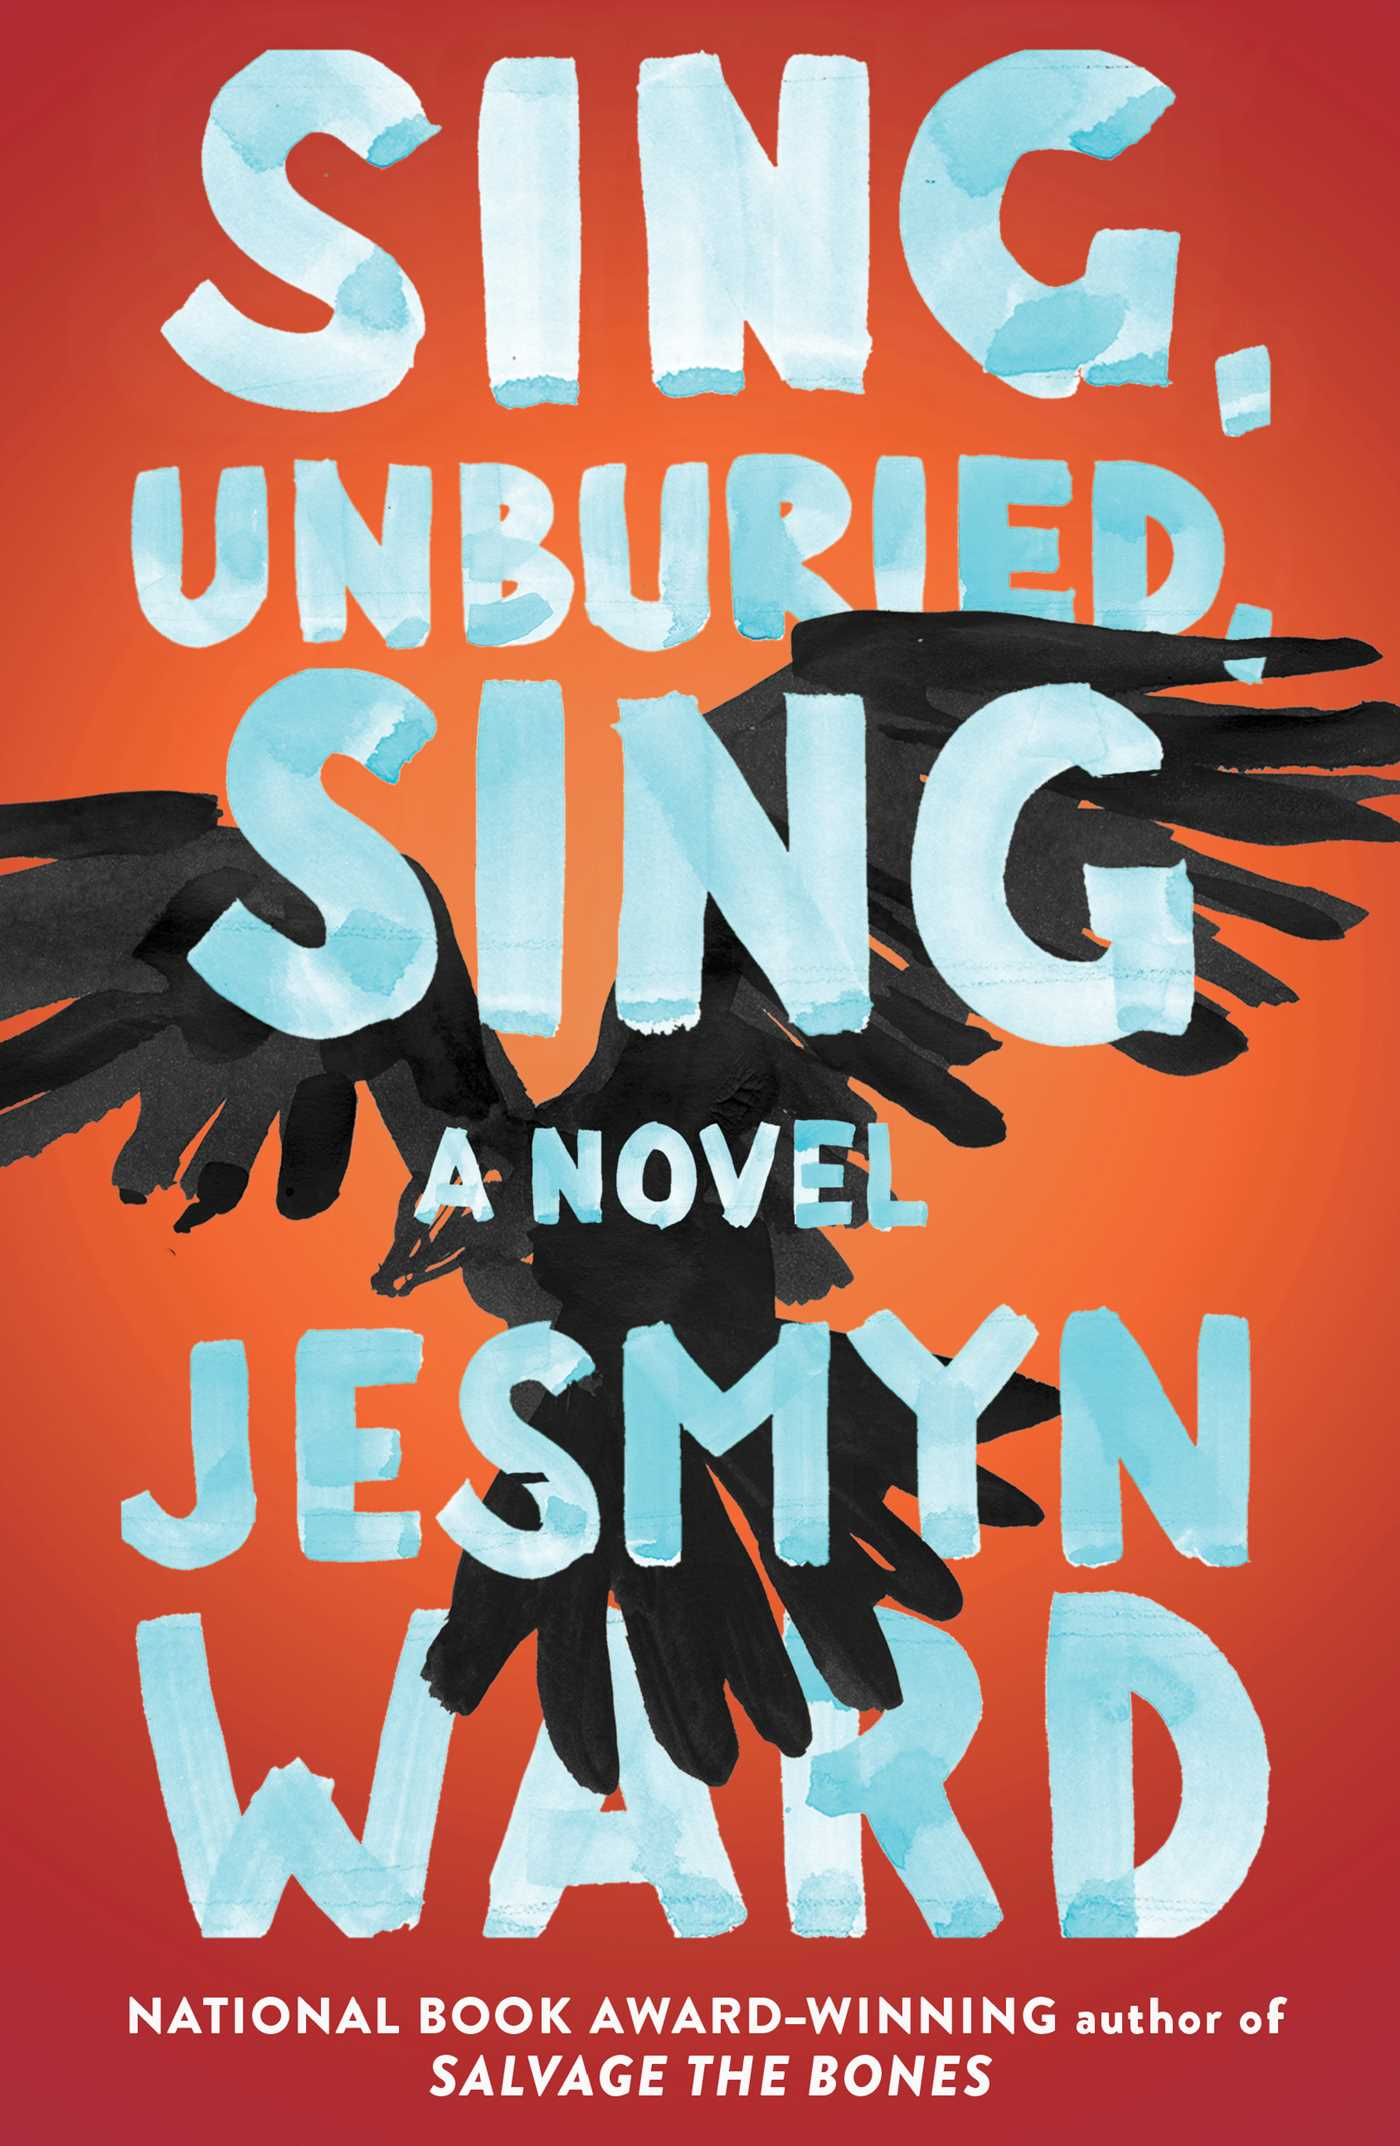 The cover of the book Sing, Unburied Sing